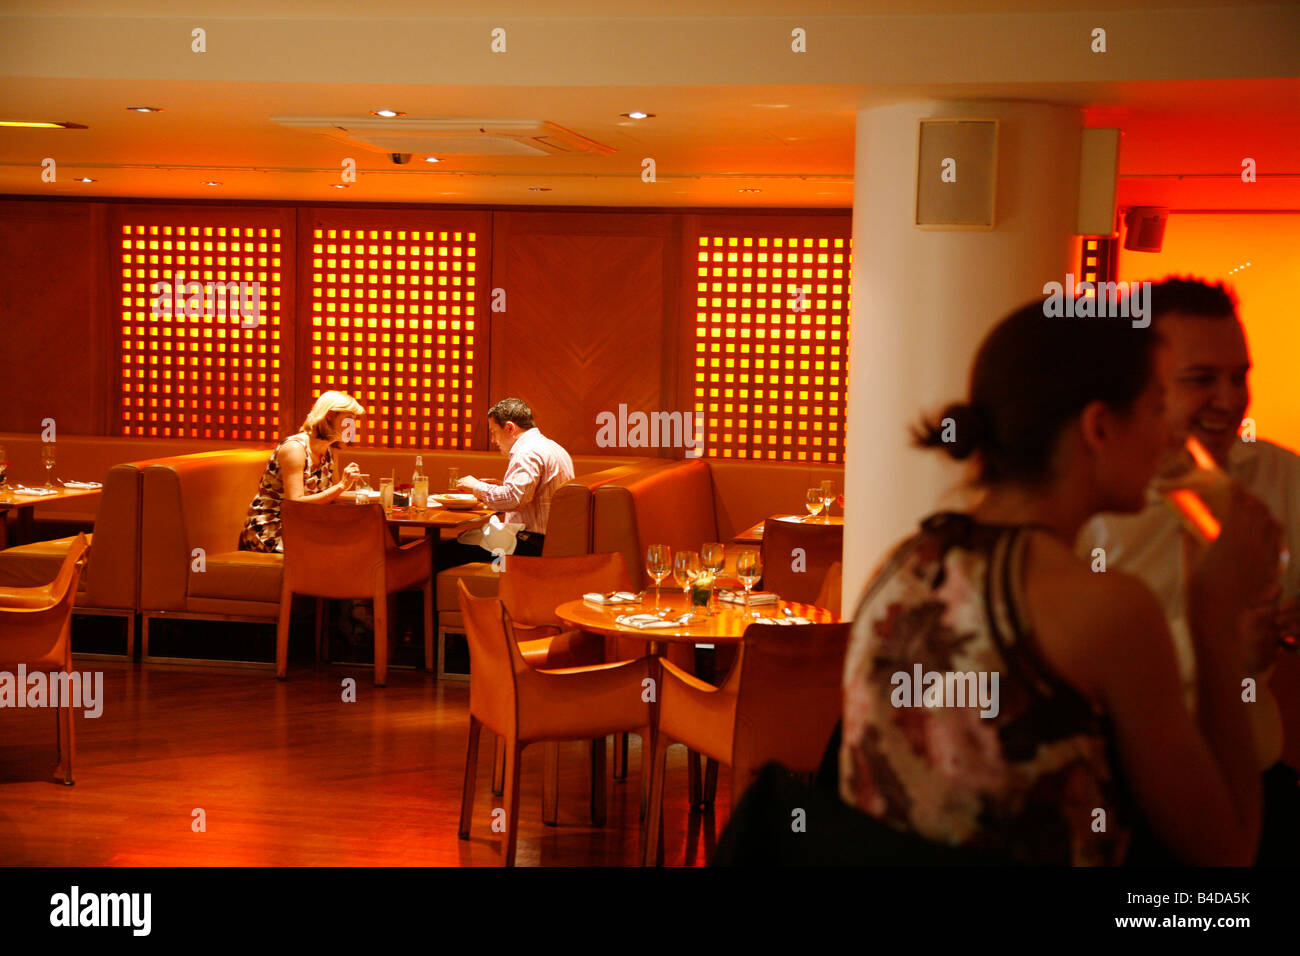 Aug 2008 - People at the trendy Pan acea restaurant and bar Manchester England UK Stock Photo